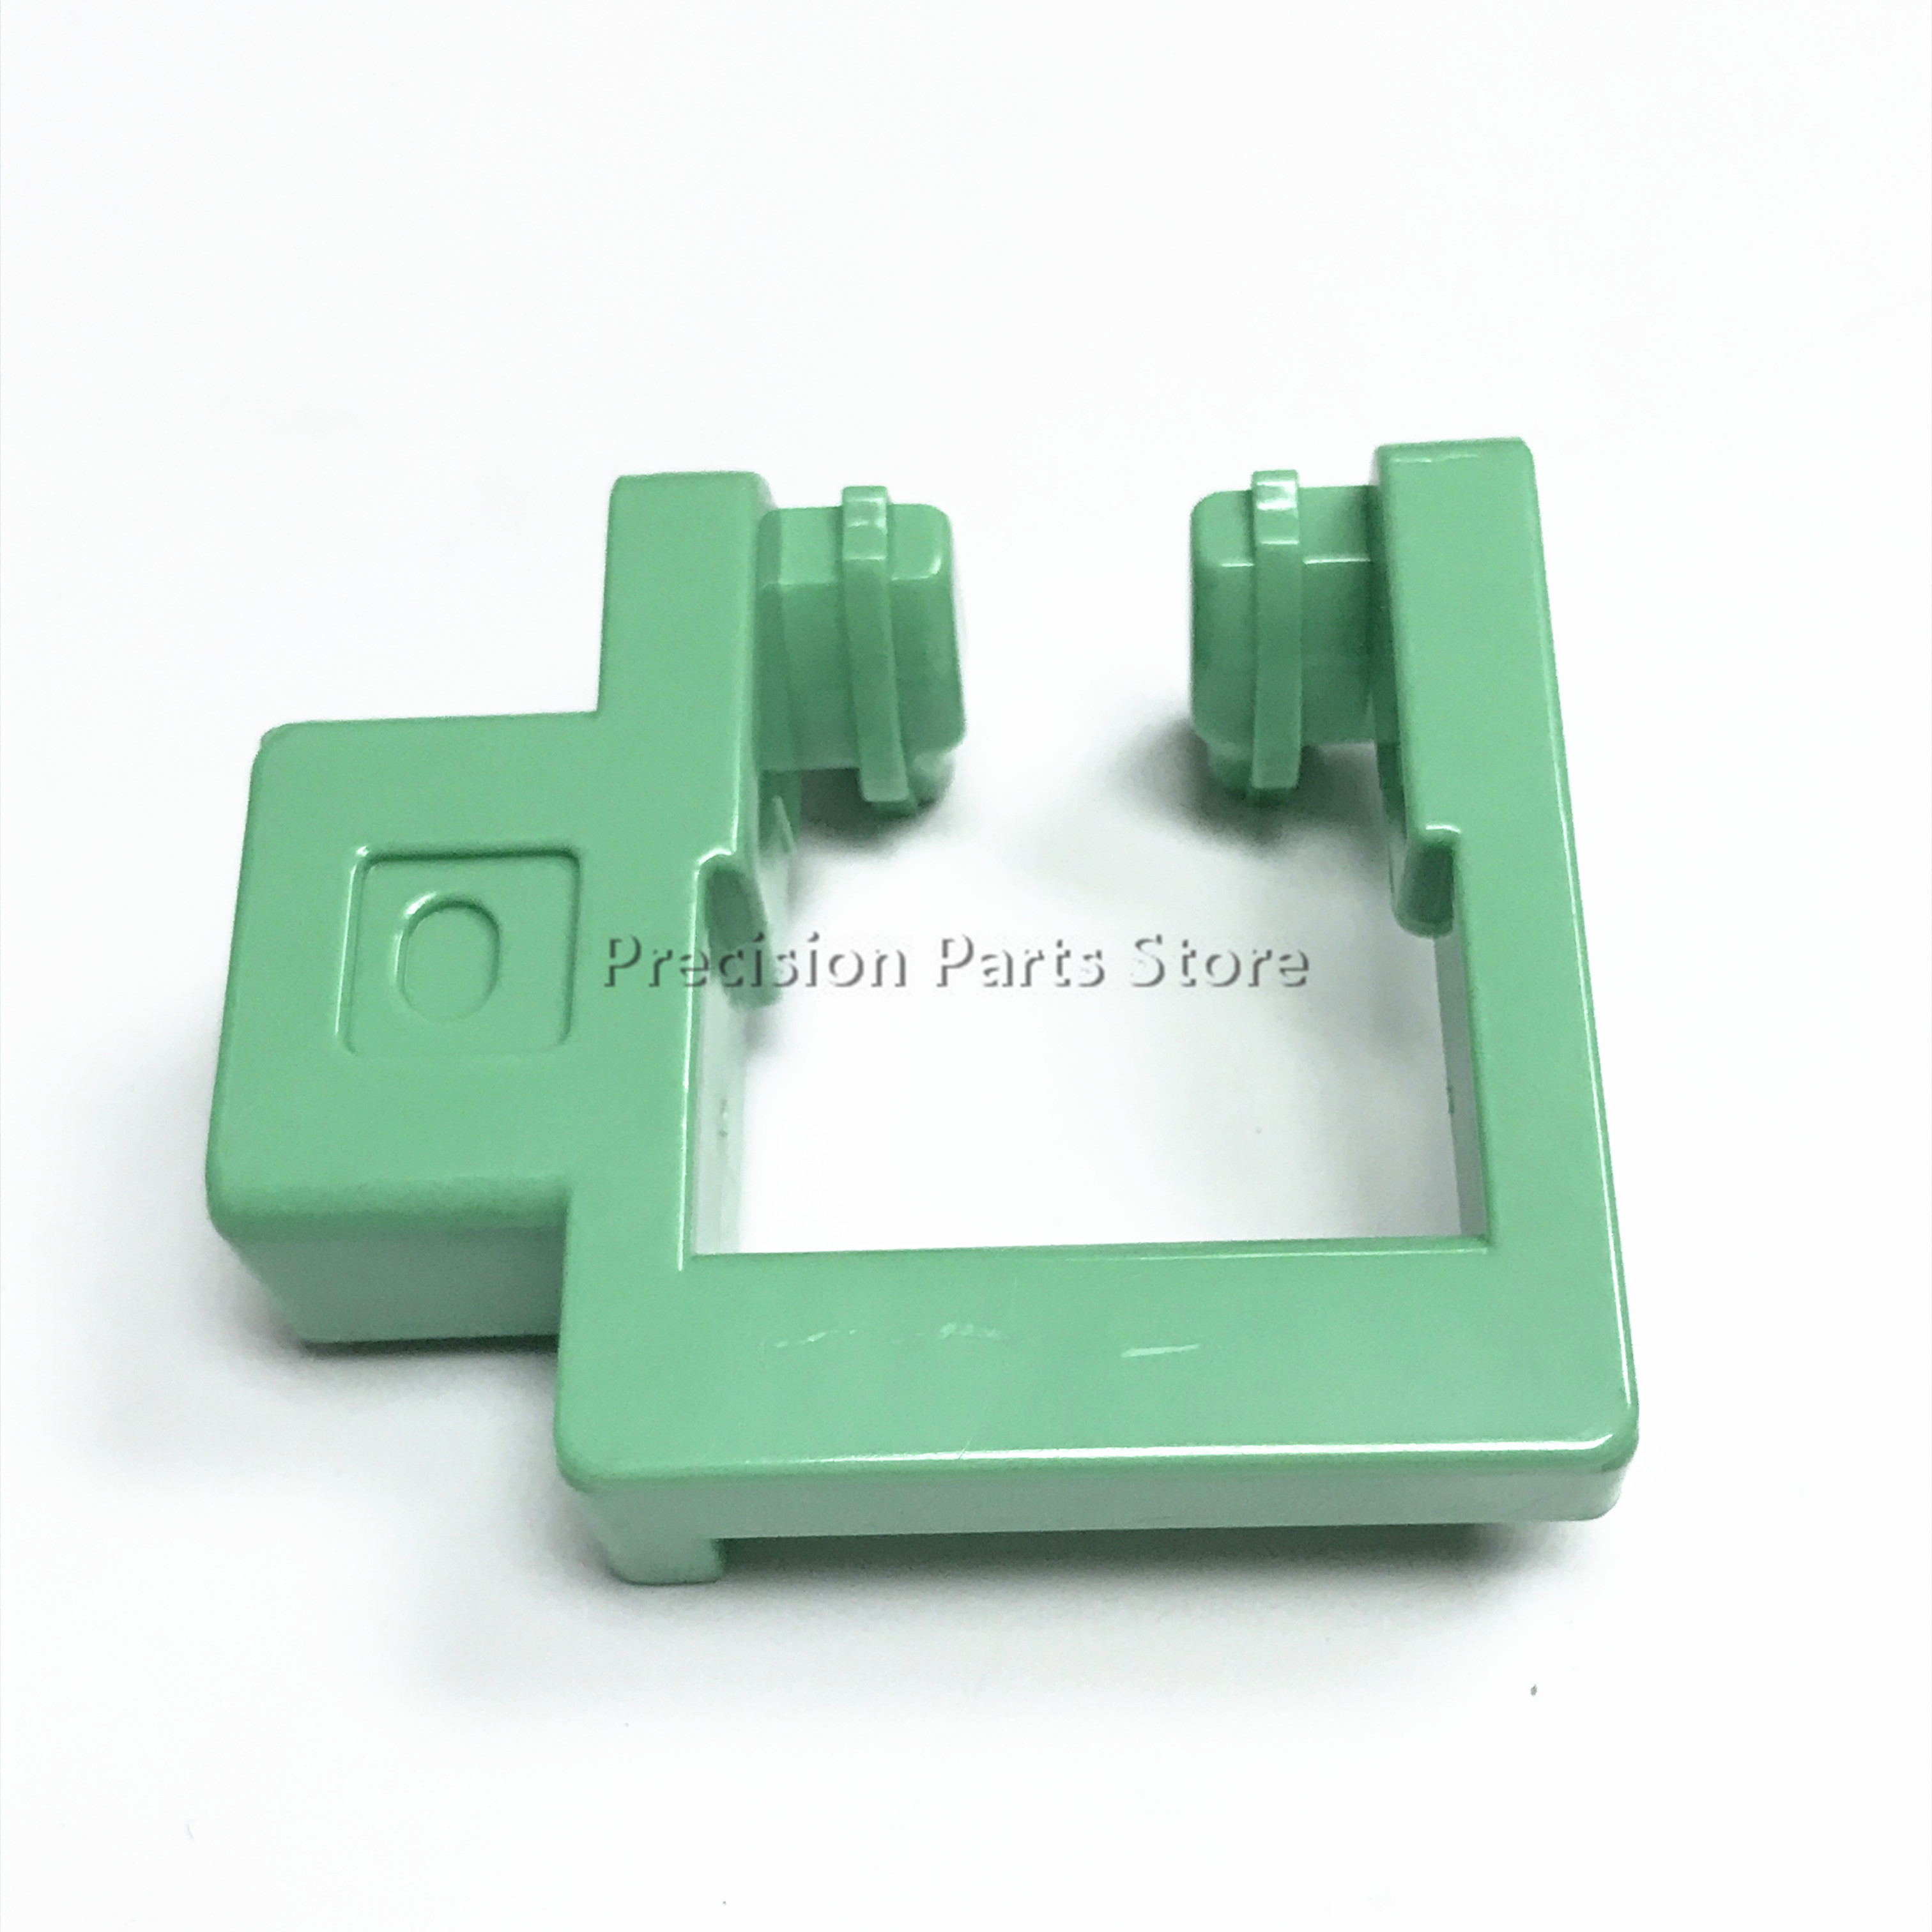 B0443461 B044-3461 Compatible new handle For Ricoh AF 1515 1013 175 175L Green Handle on toner supply-0